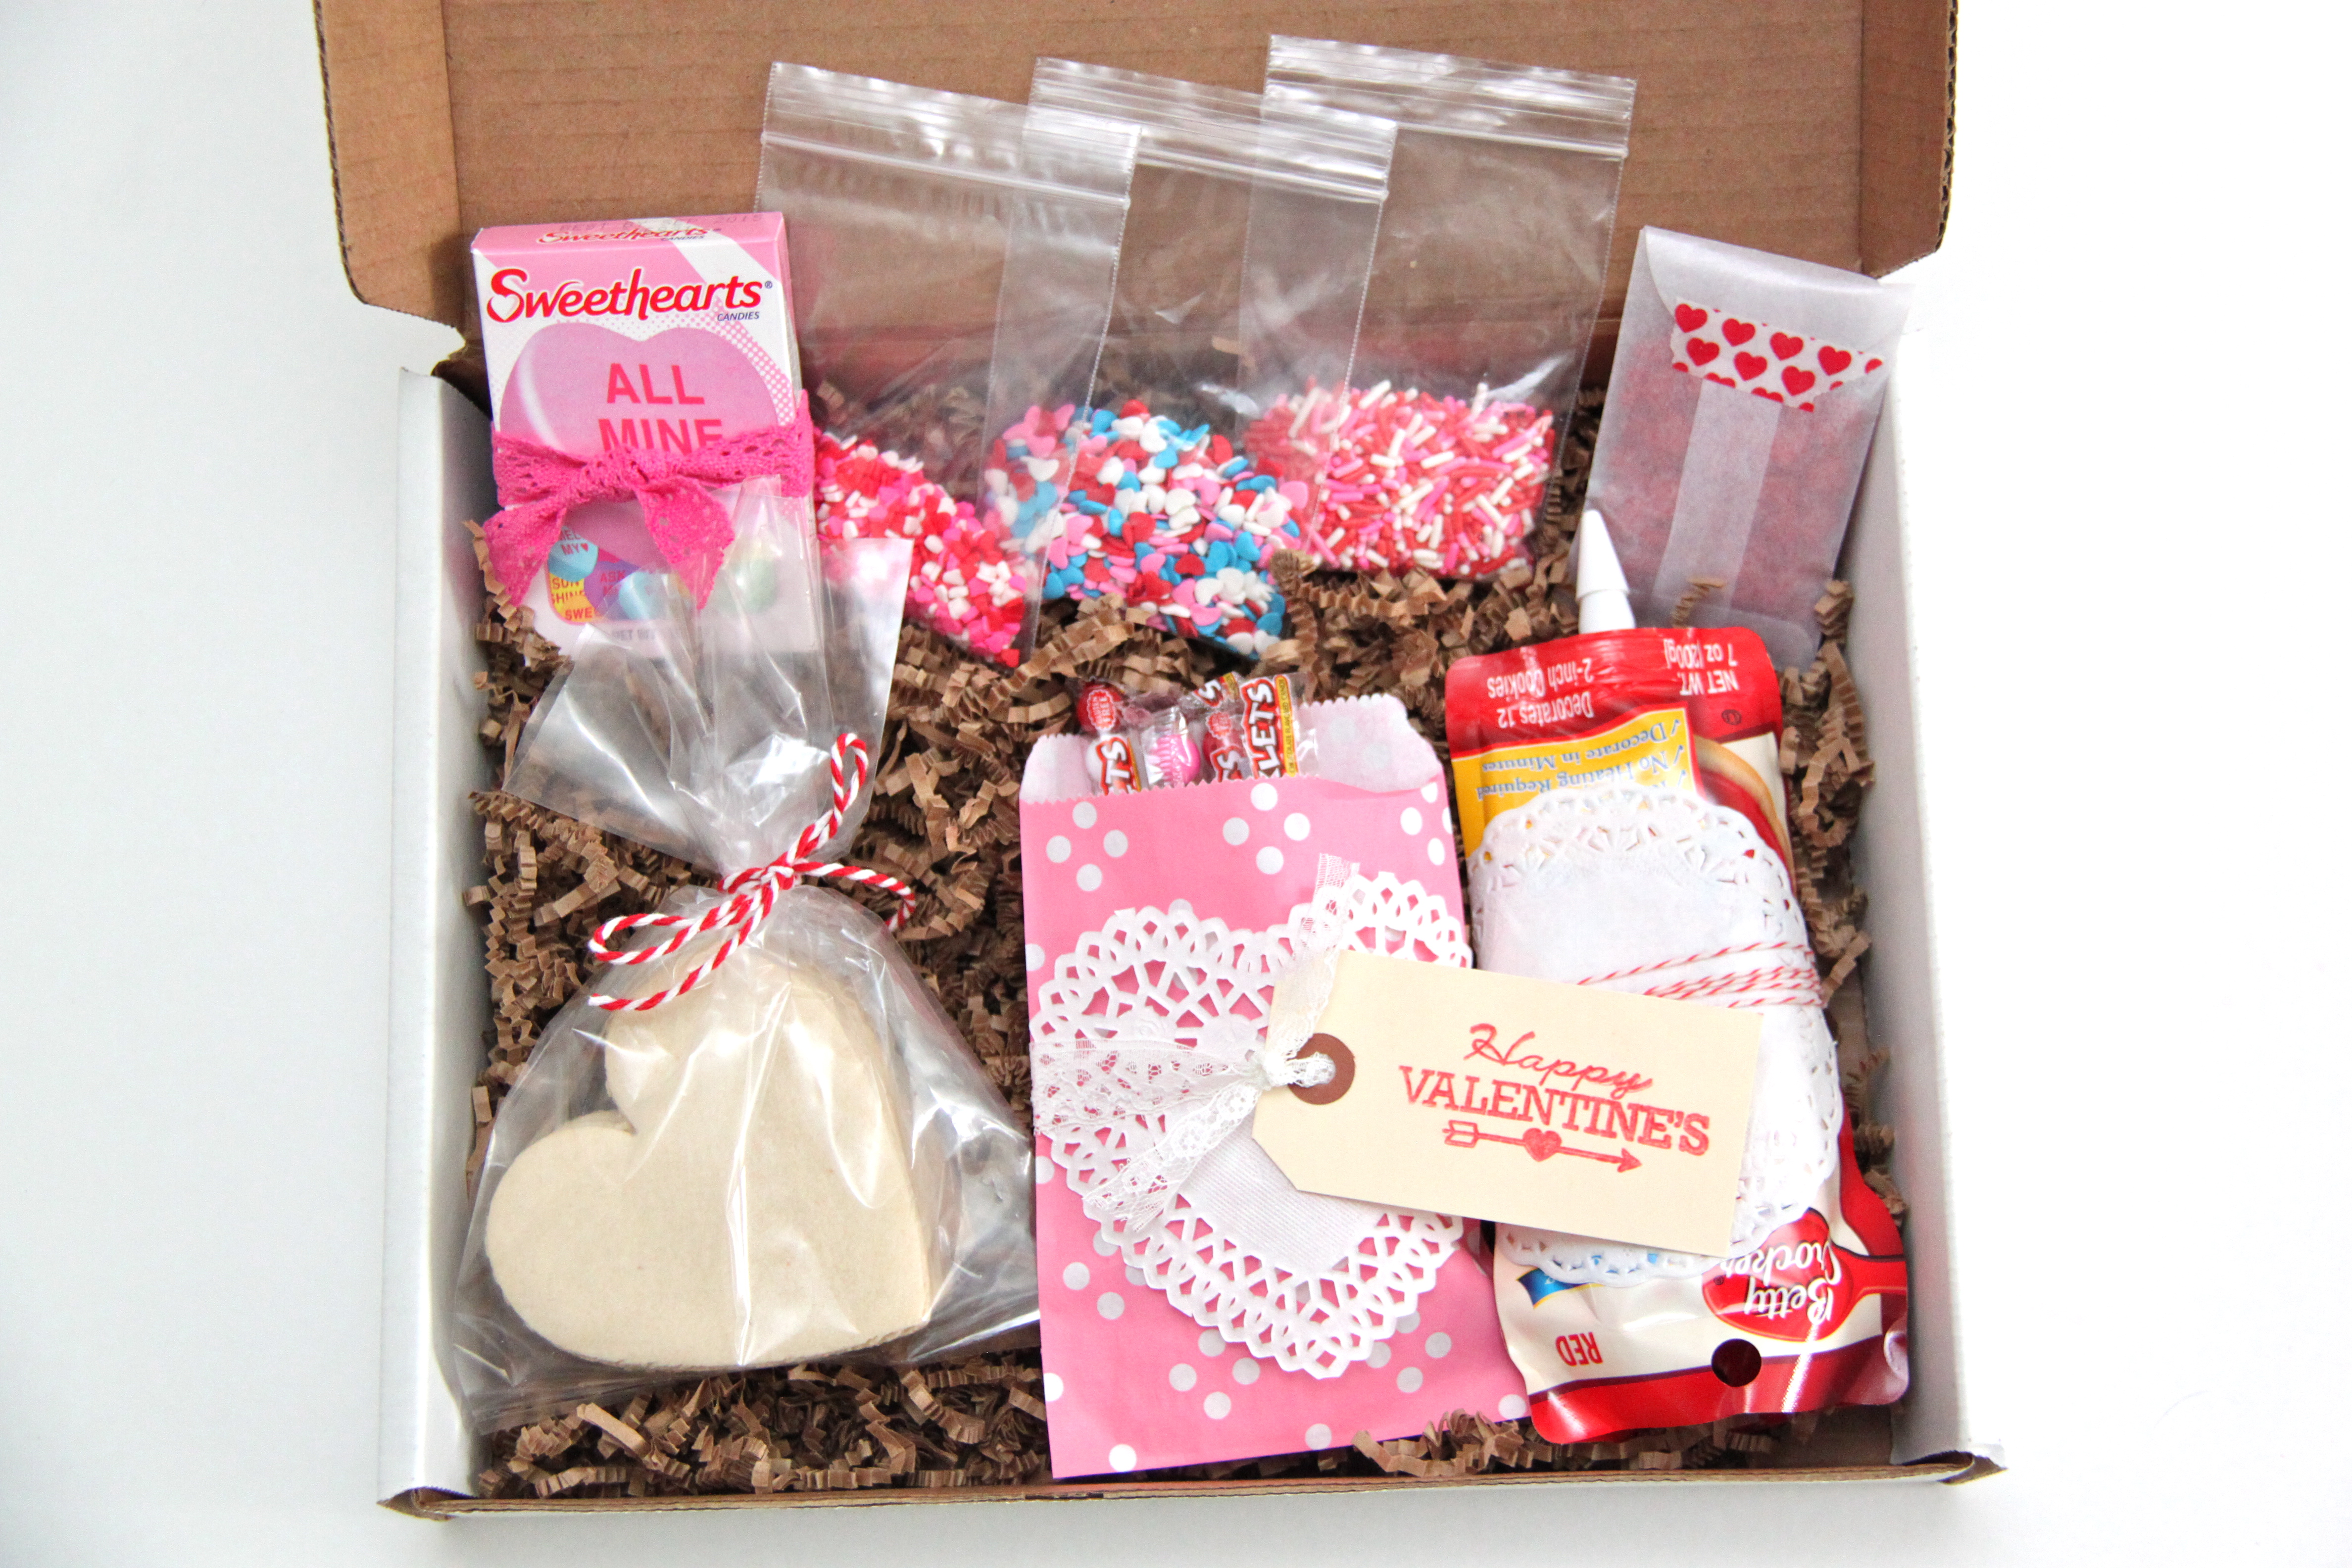 decorate a valentines cookie in a box kit